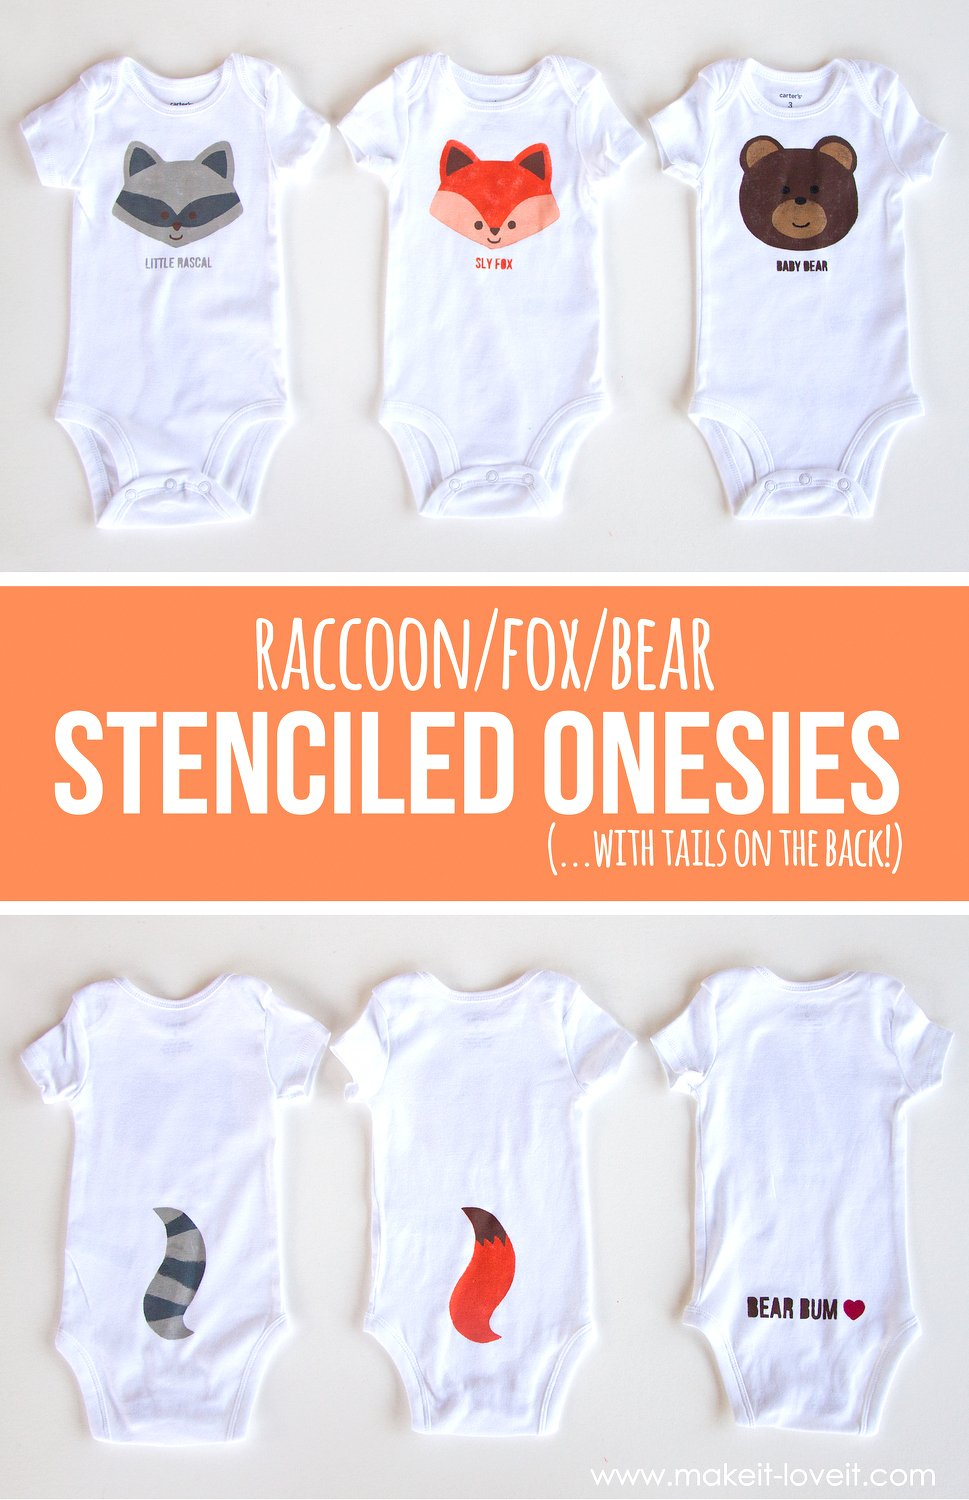 Fox/bear/raccoon diy stenciled onesies (…with tails on the back!)